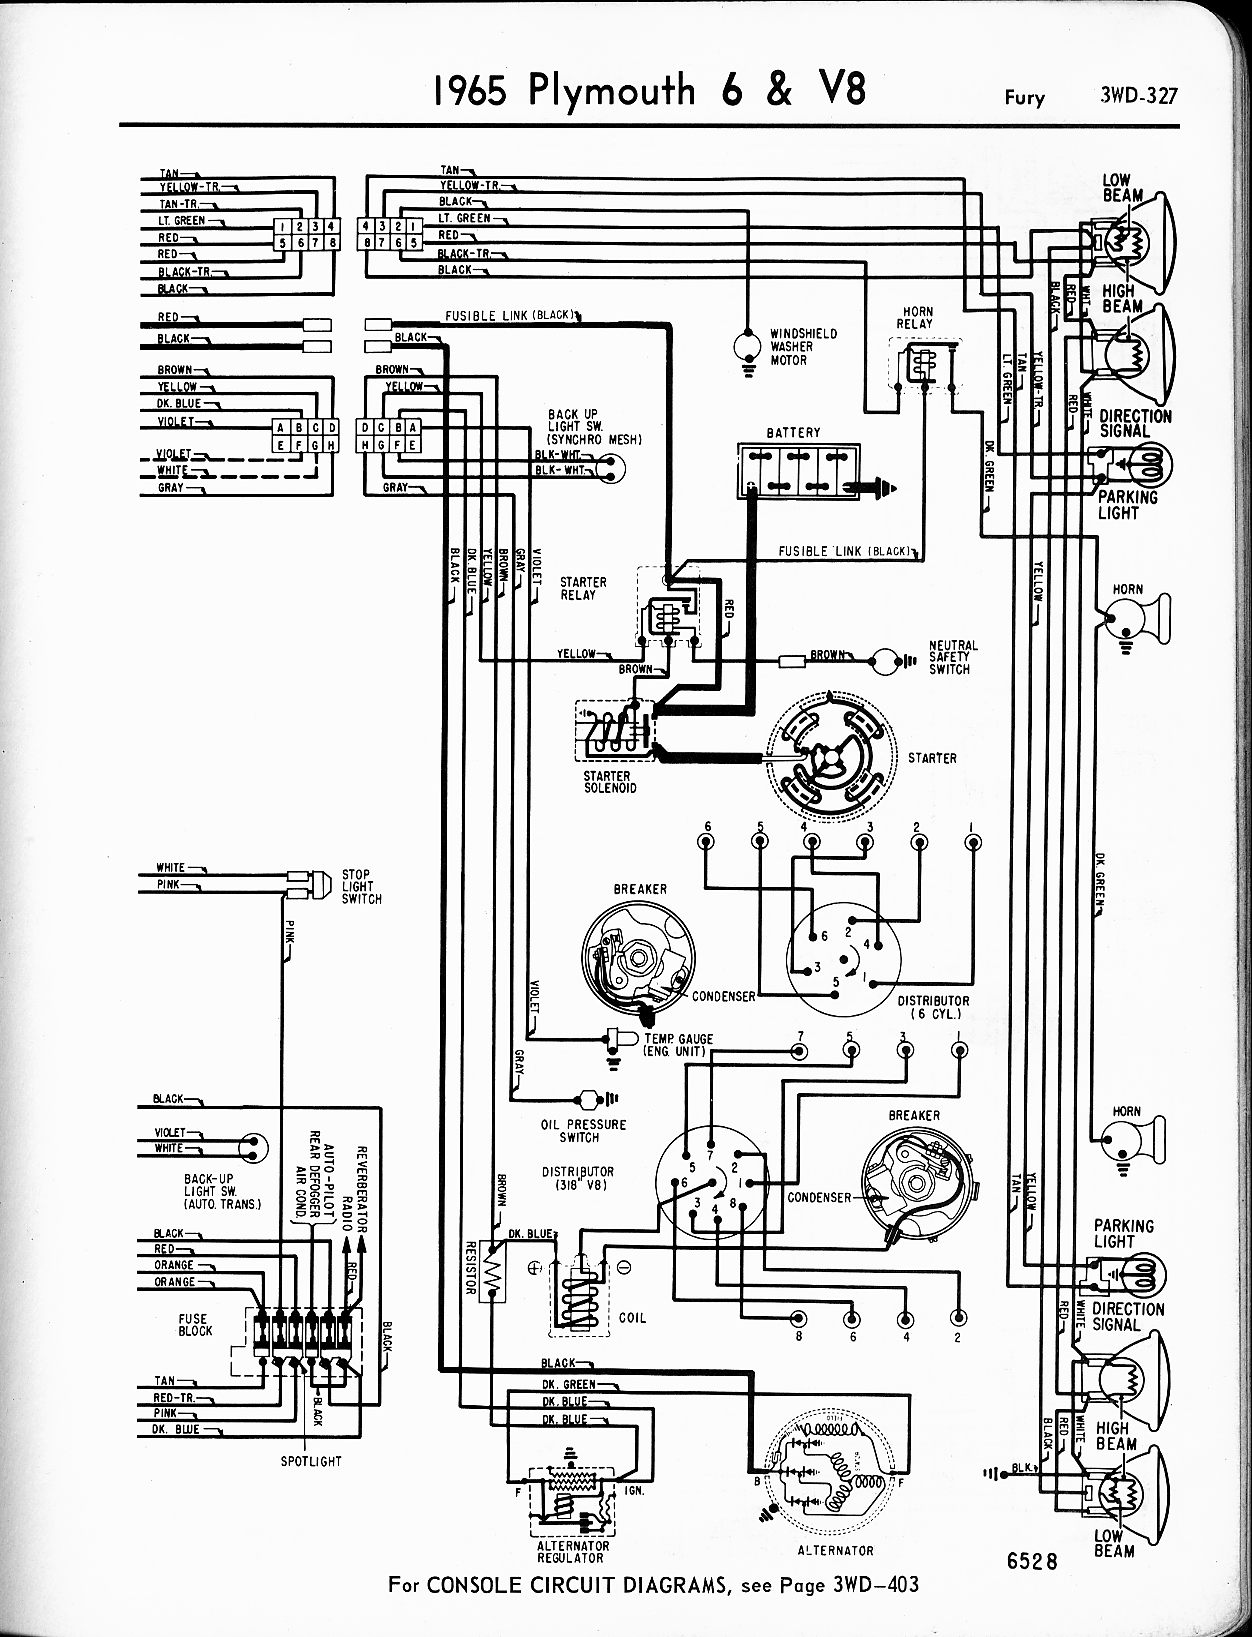 1952 plymouth wiring harness wiring diagrams 1953 plymouth wiring diagram plete car engine scheme and wiring 1951 plymouth wiring harness 1952 plymouth